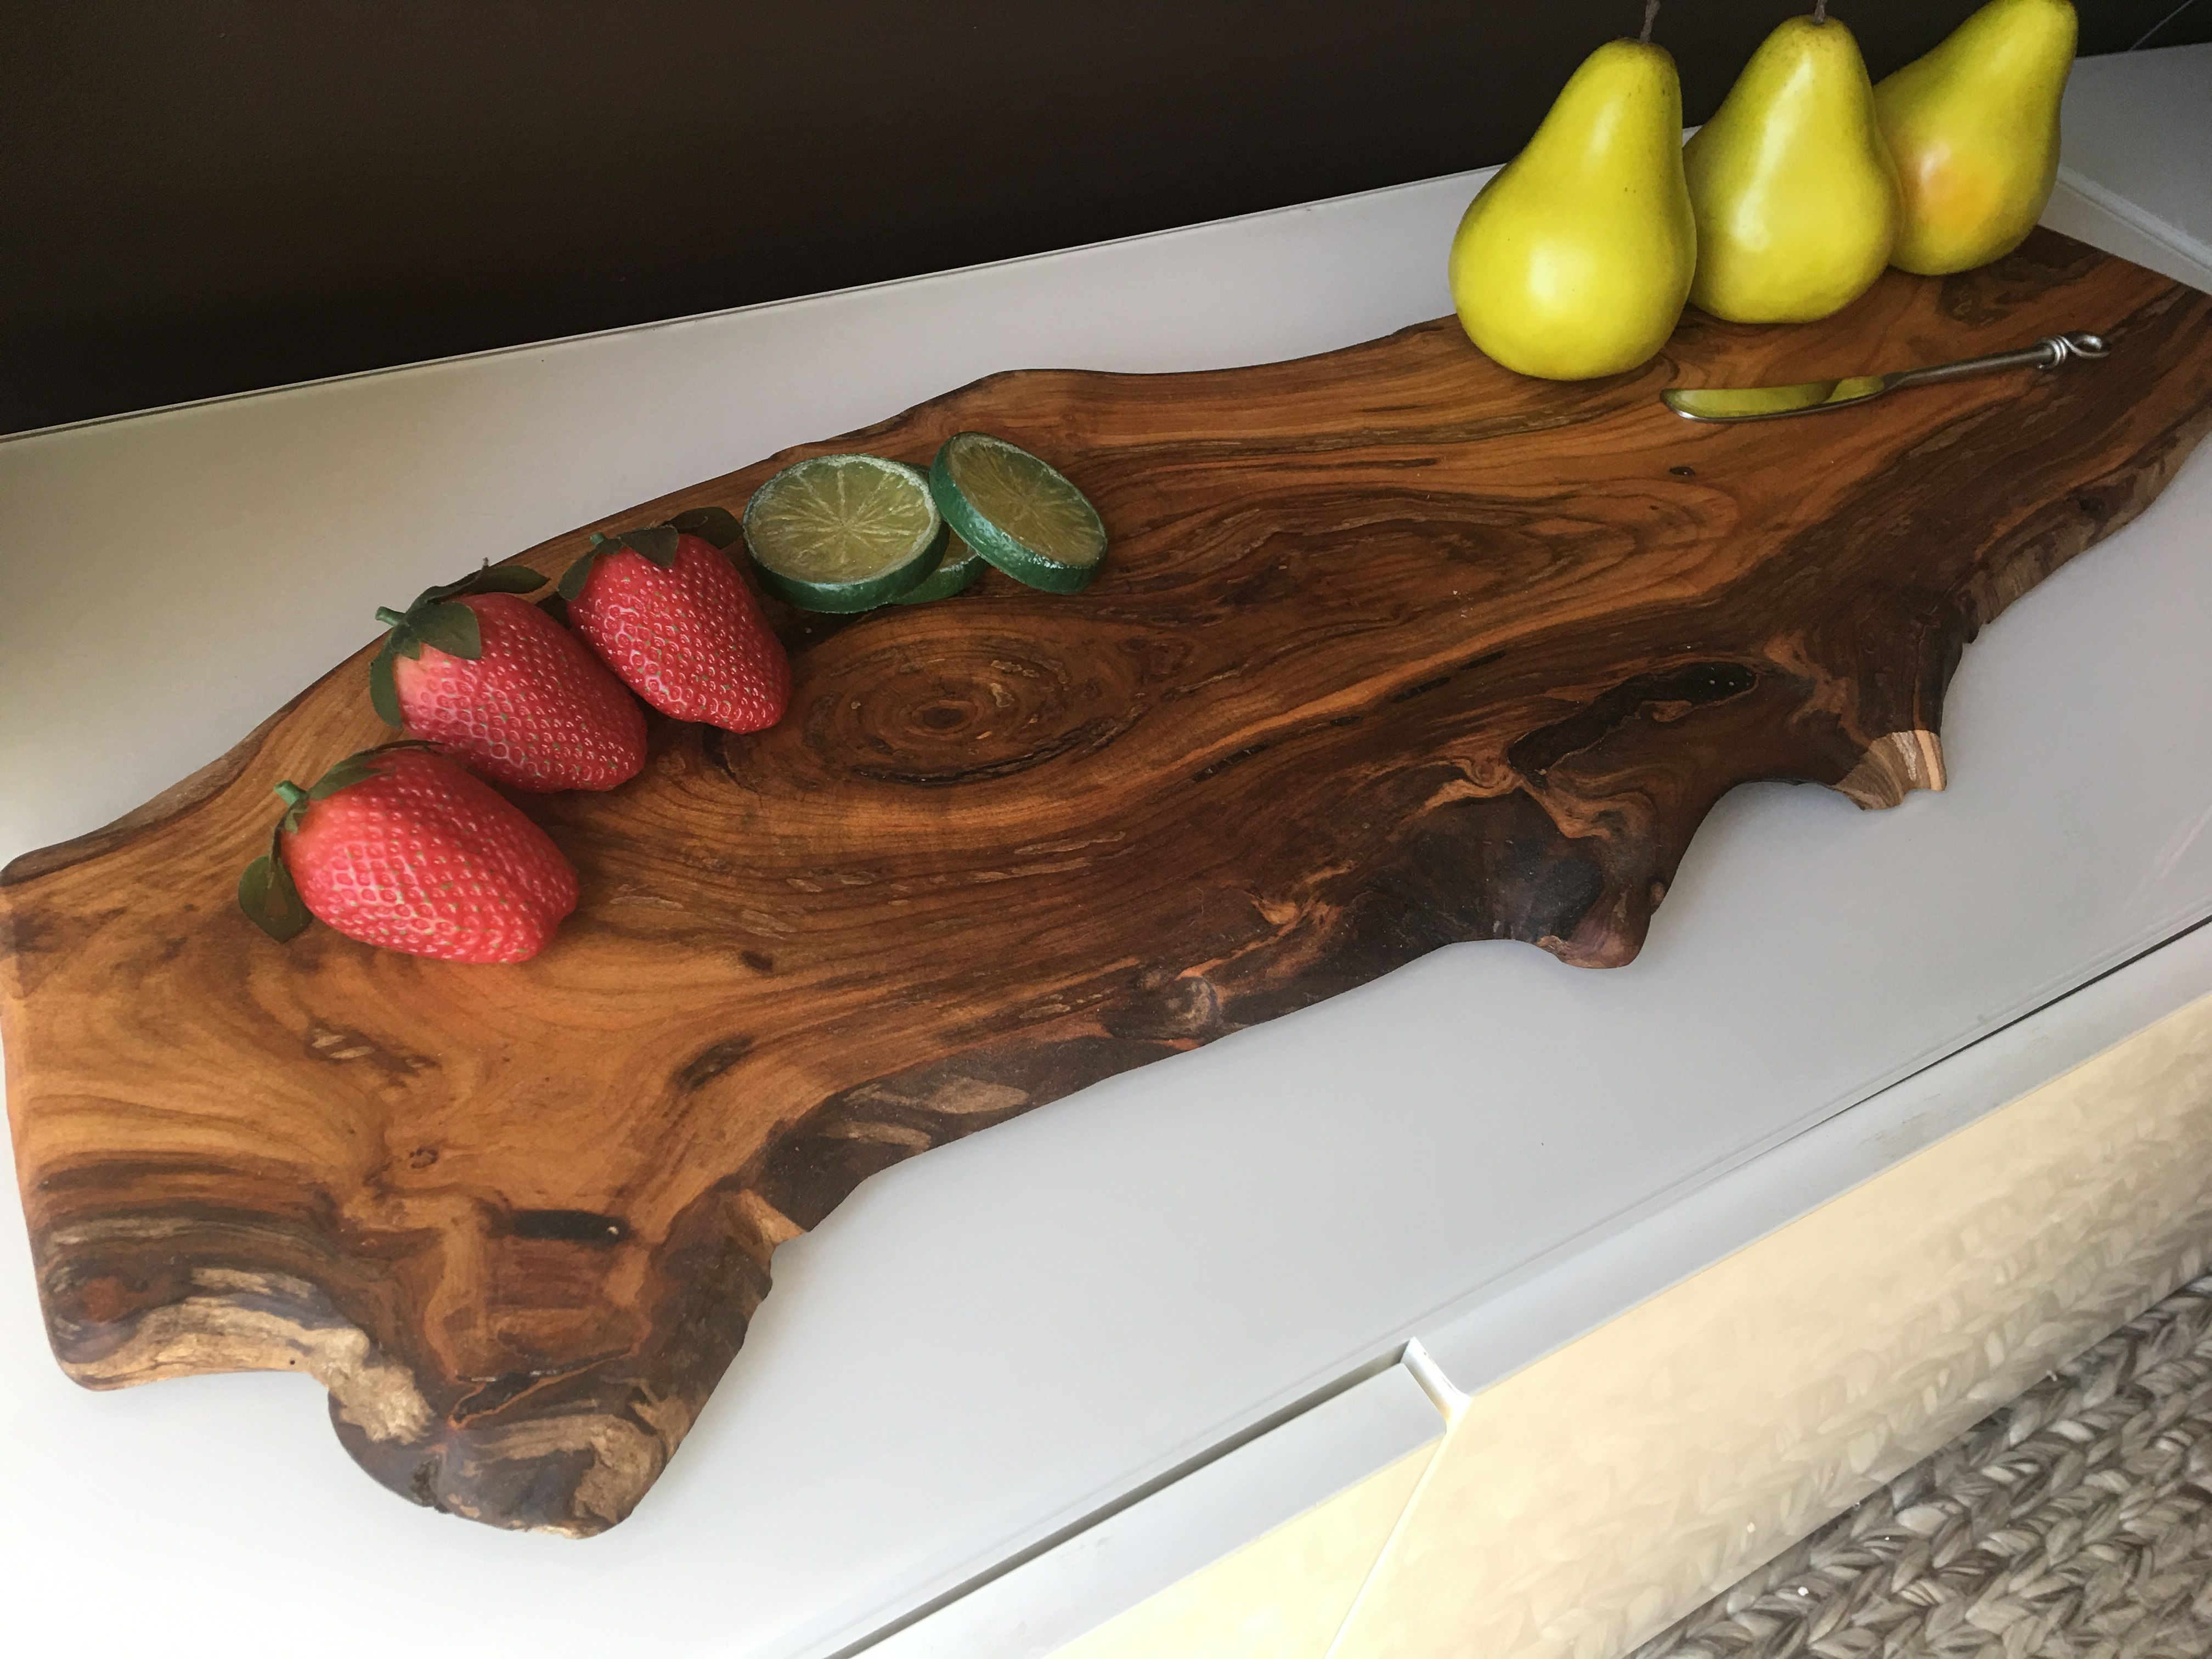 Make your cheese plate simply stunning diy wood slice cutting board - Live Edge Cherry Cutting Board Charcuterie Board Cherry Cheese Serving Board